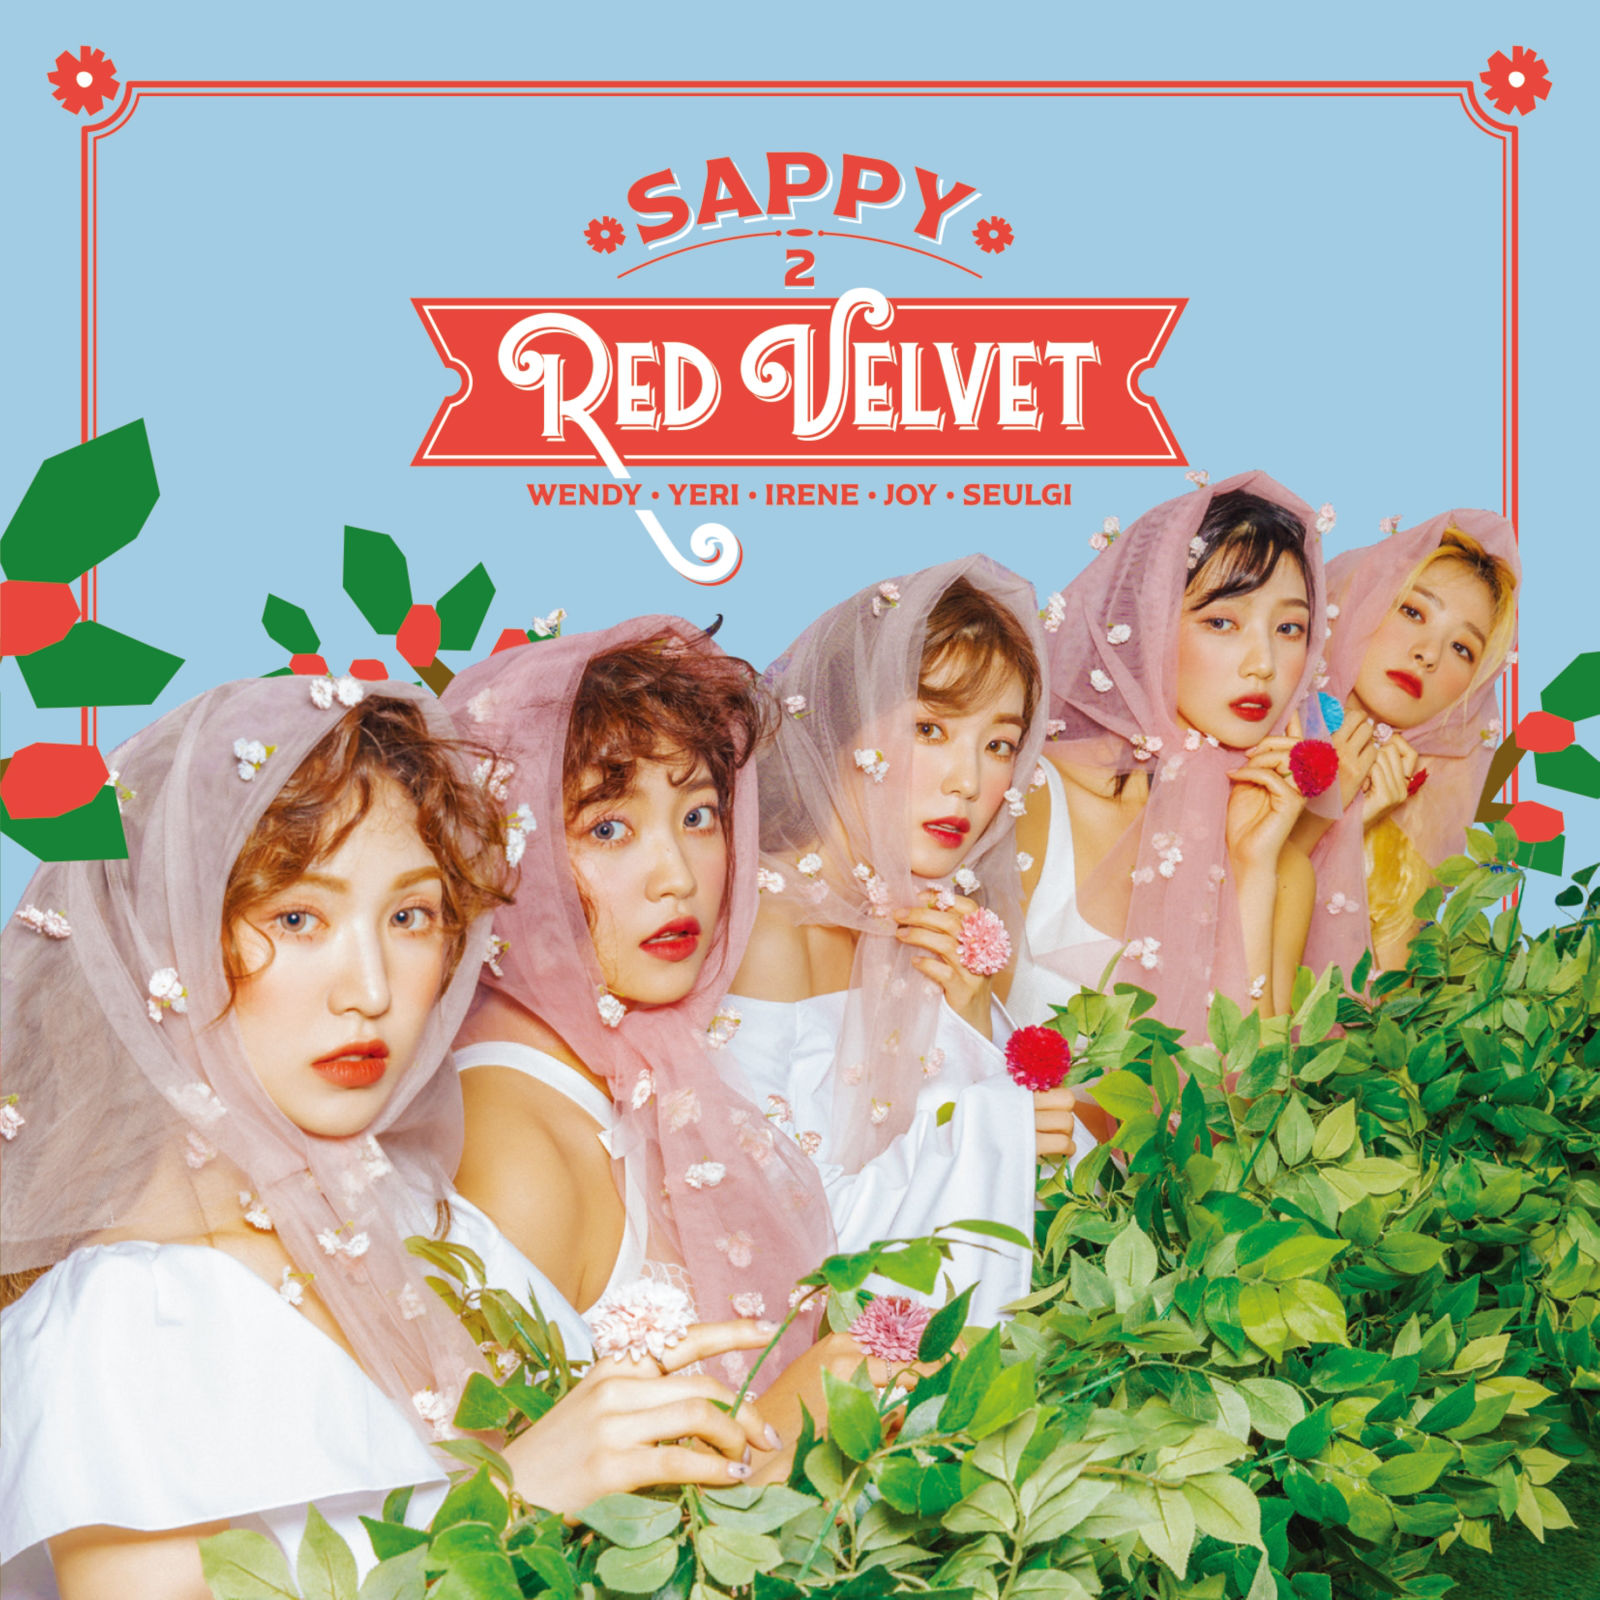 Red Velvet - Peek-A-Boo (Japanese Version)